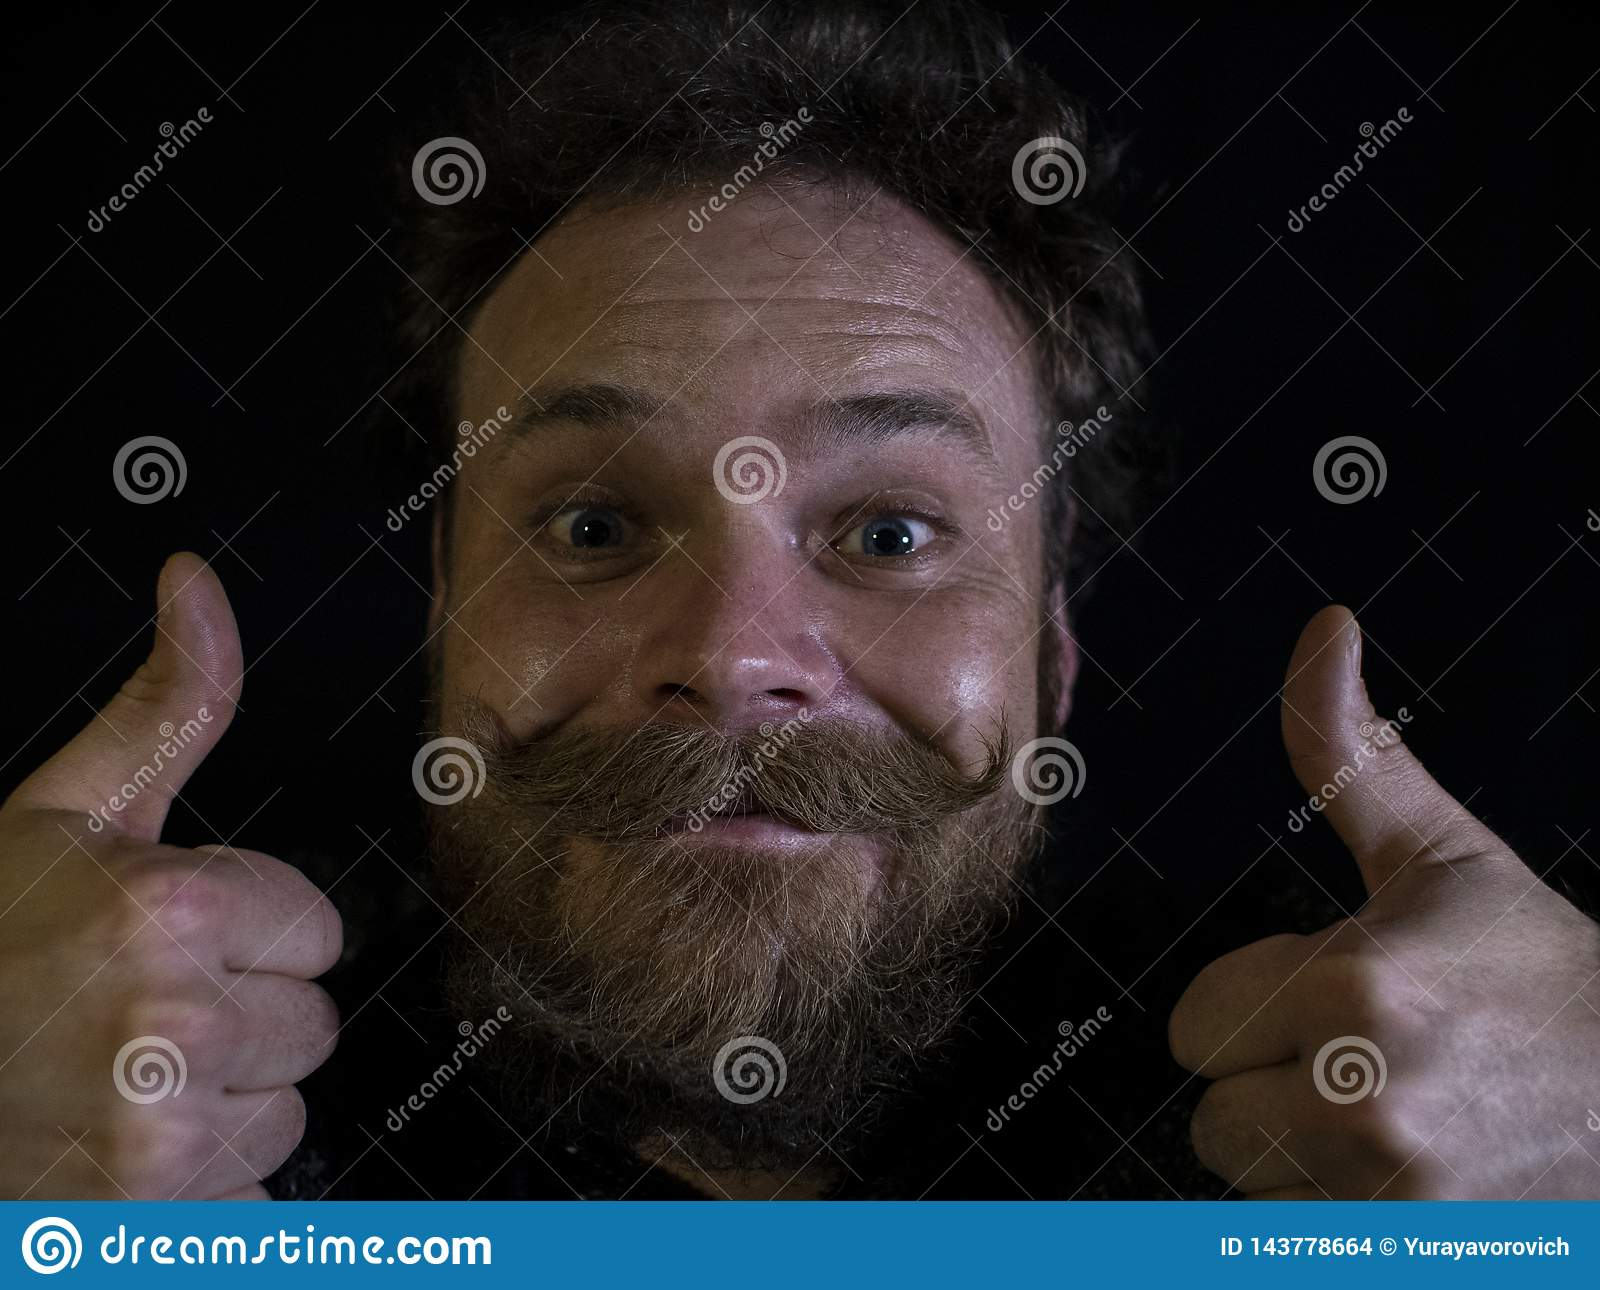 Funny face of a man with a beard and mustache close up and showing thumbs up